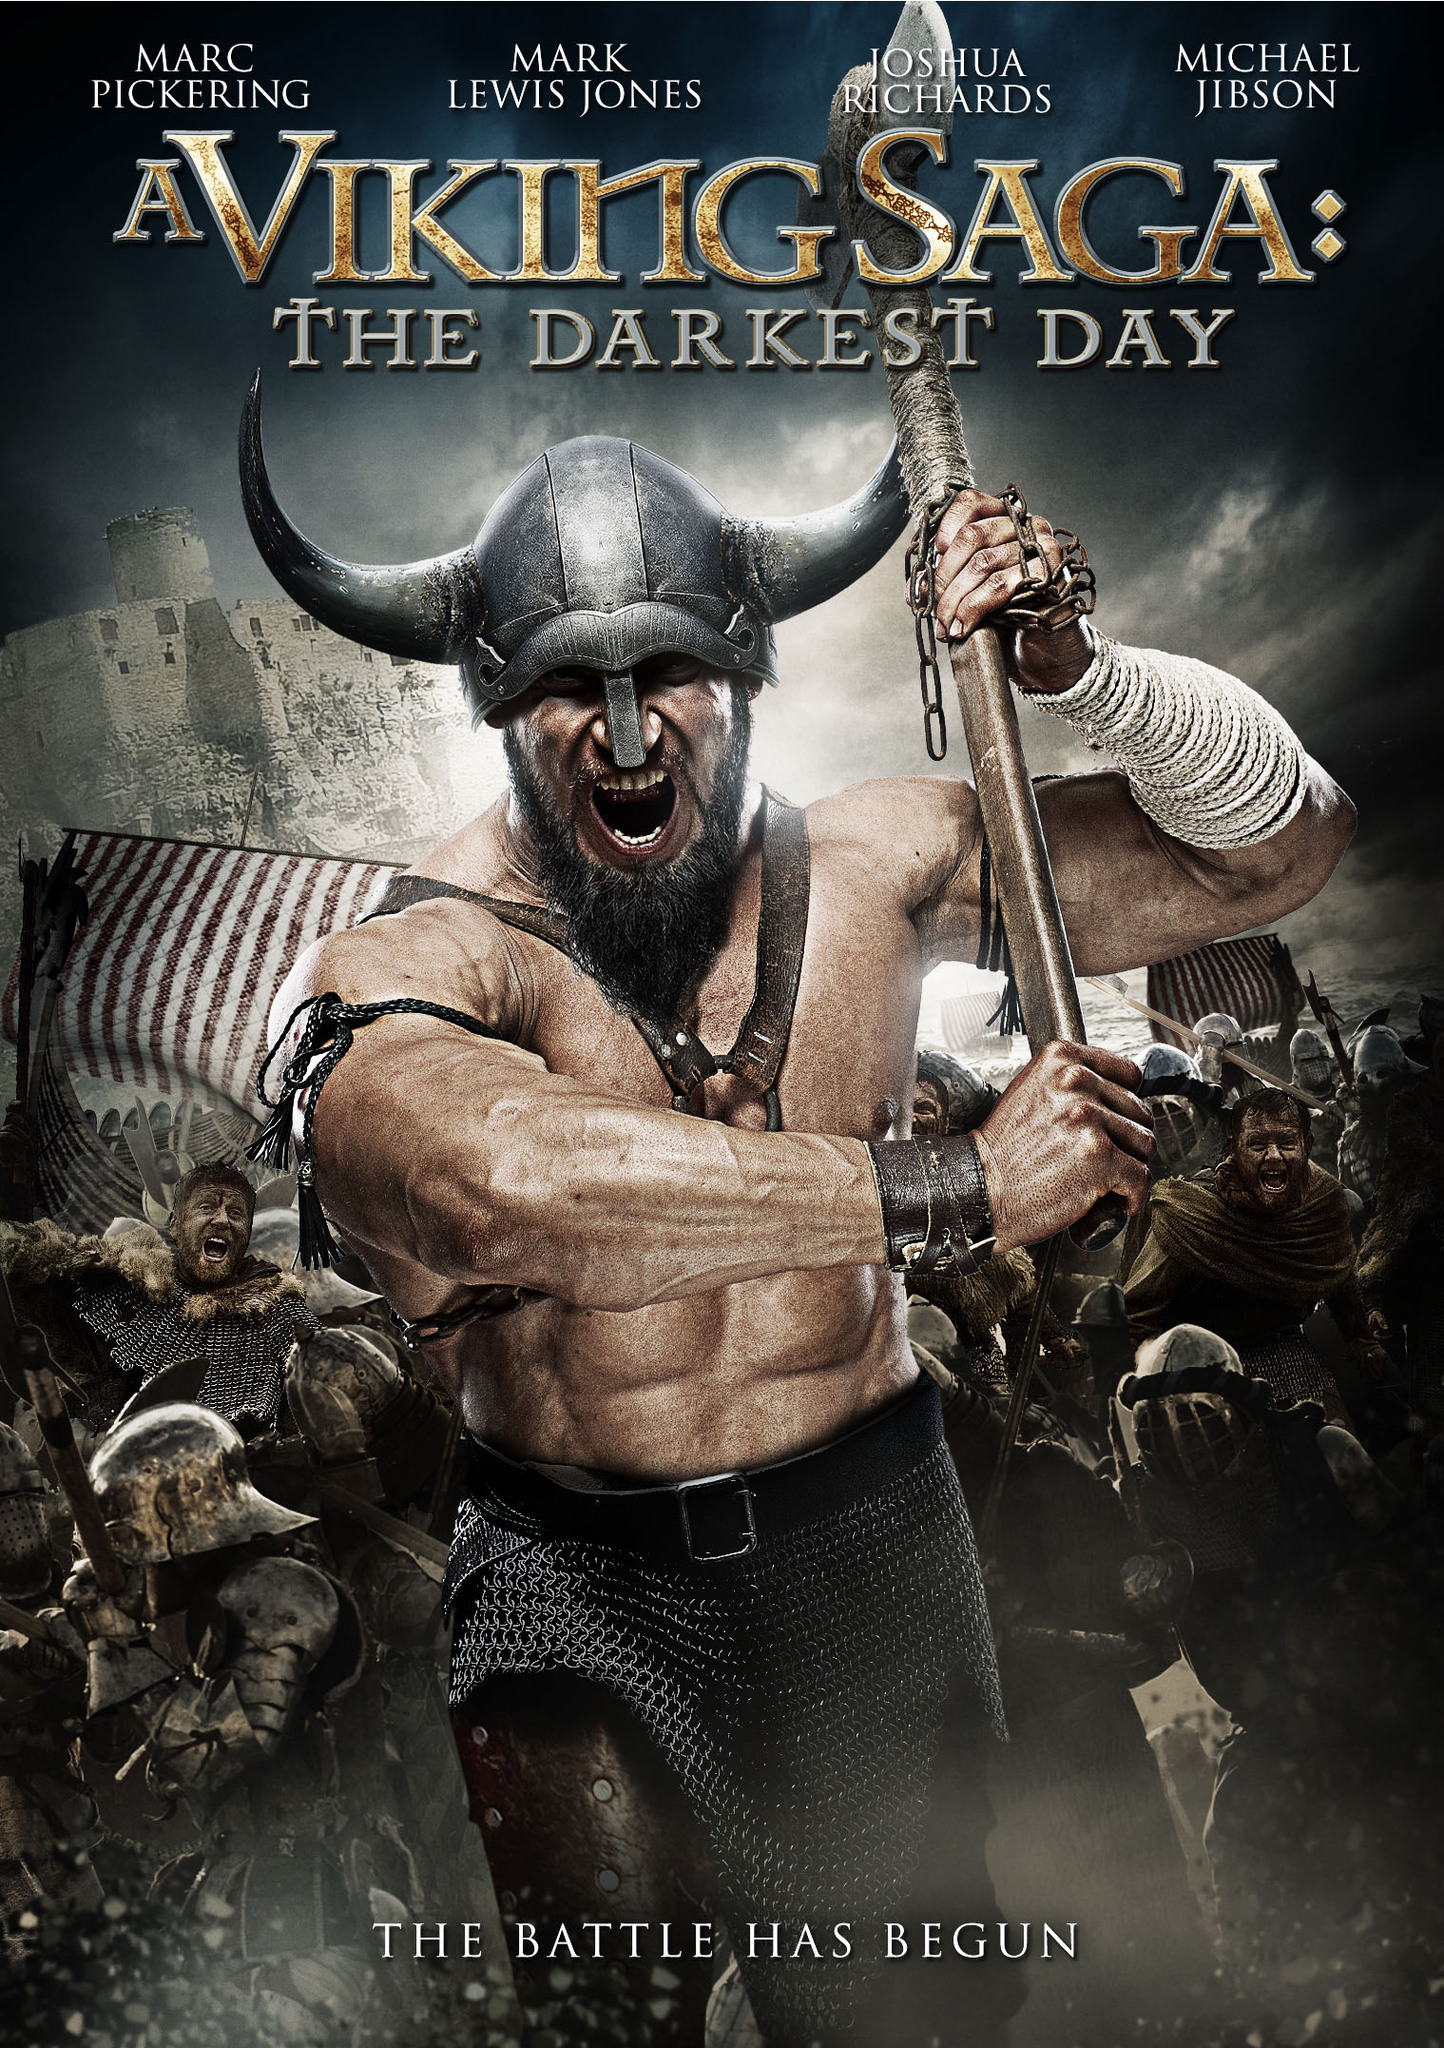 A Viking Saga The Darkest Day 2013